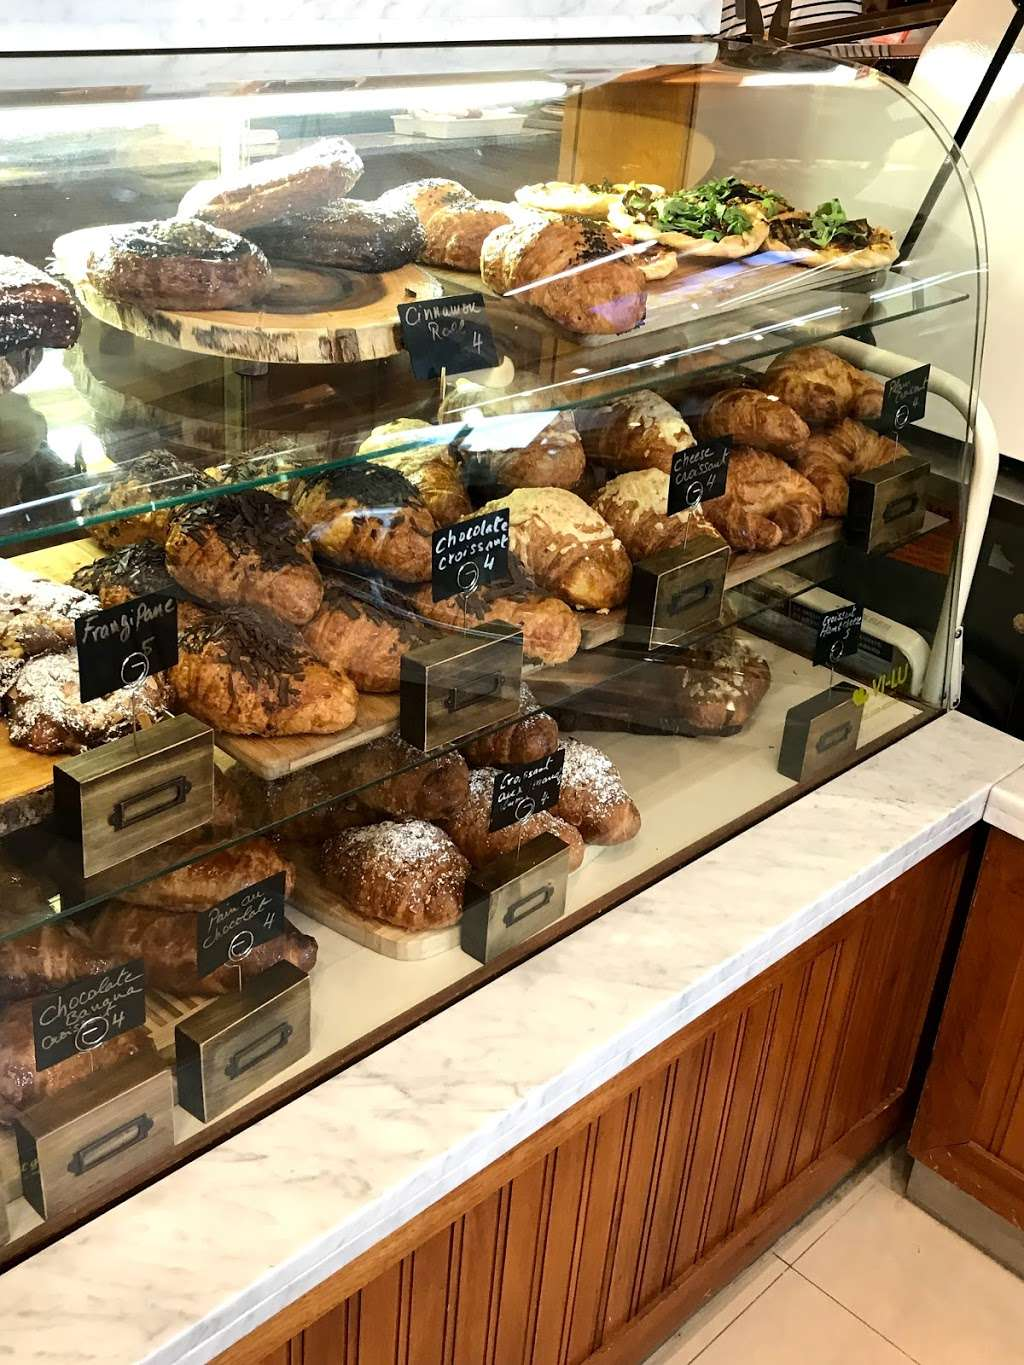 Delices De Maurice - cafe  | Photo 1 of 5 | Address: Westheimer Pkwy, Katy, TX 77450, USA | Phone: (832) 437-5723